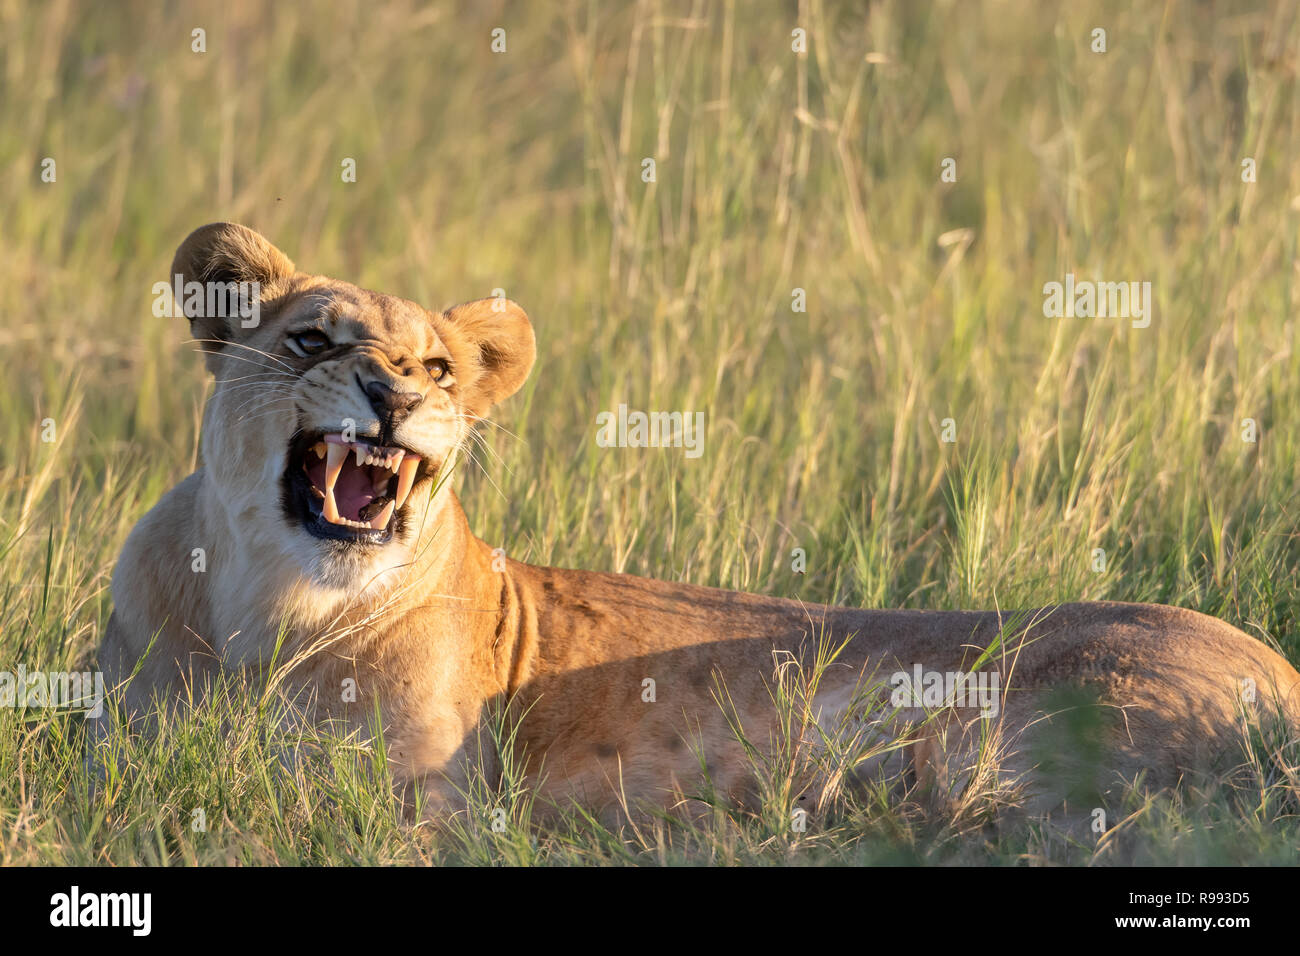 Snarling Lioness (Panthera leo) in Botswana, Africa - Stock Image